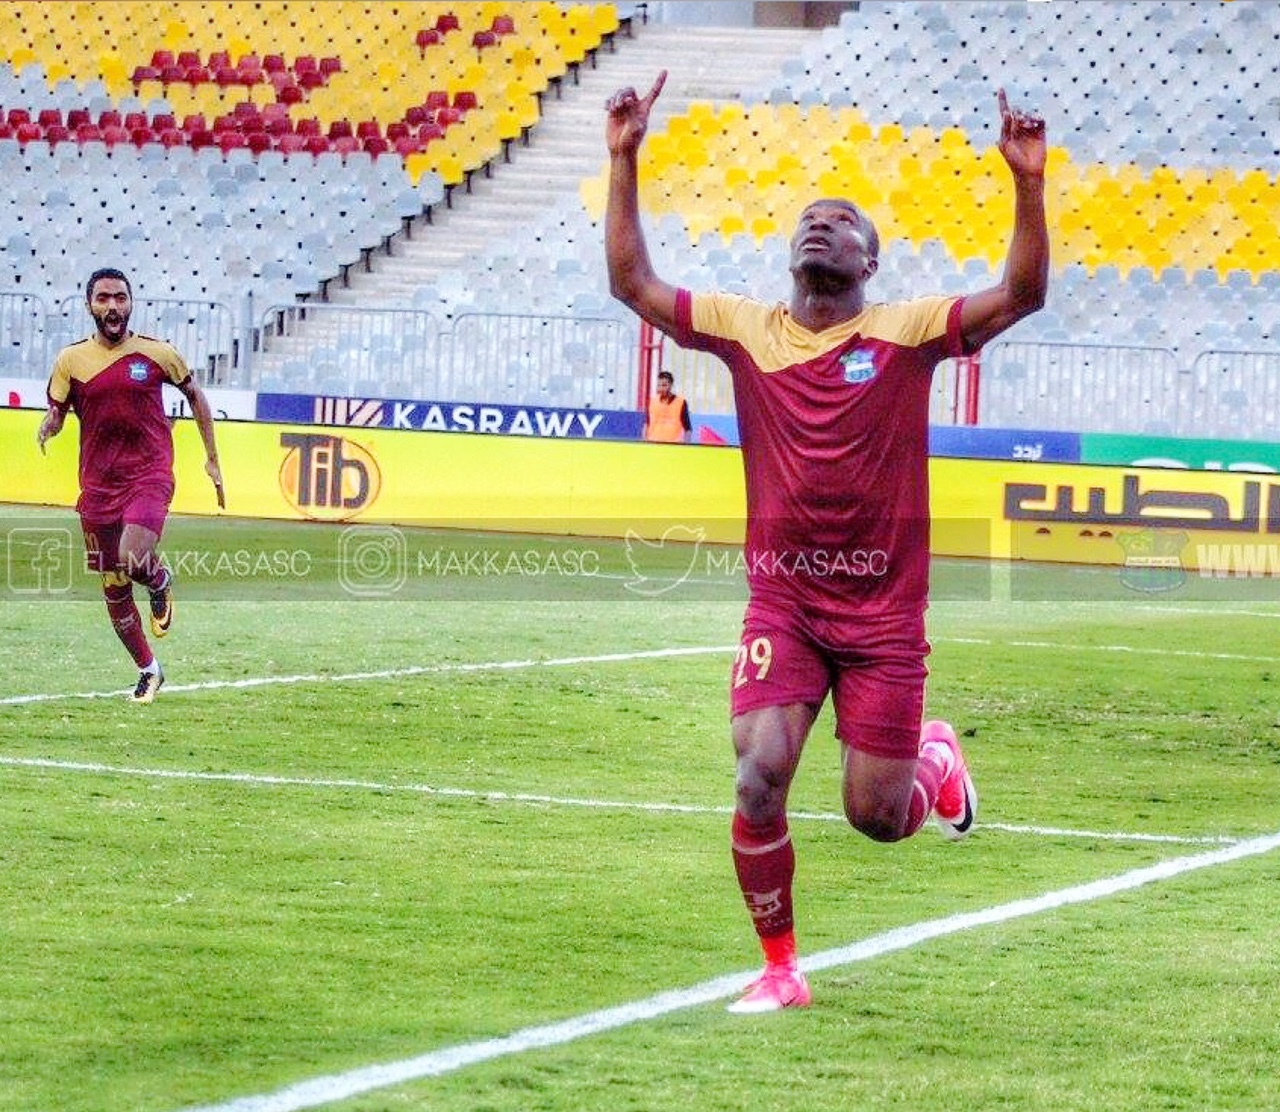 Egyptian side El-Makkasa set to activate option to buy striker John Antwi from Al Ahly